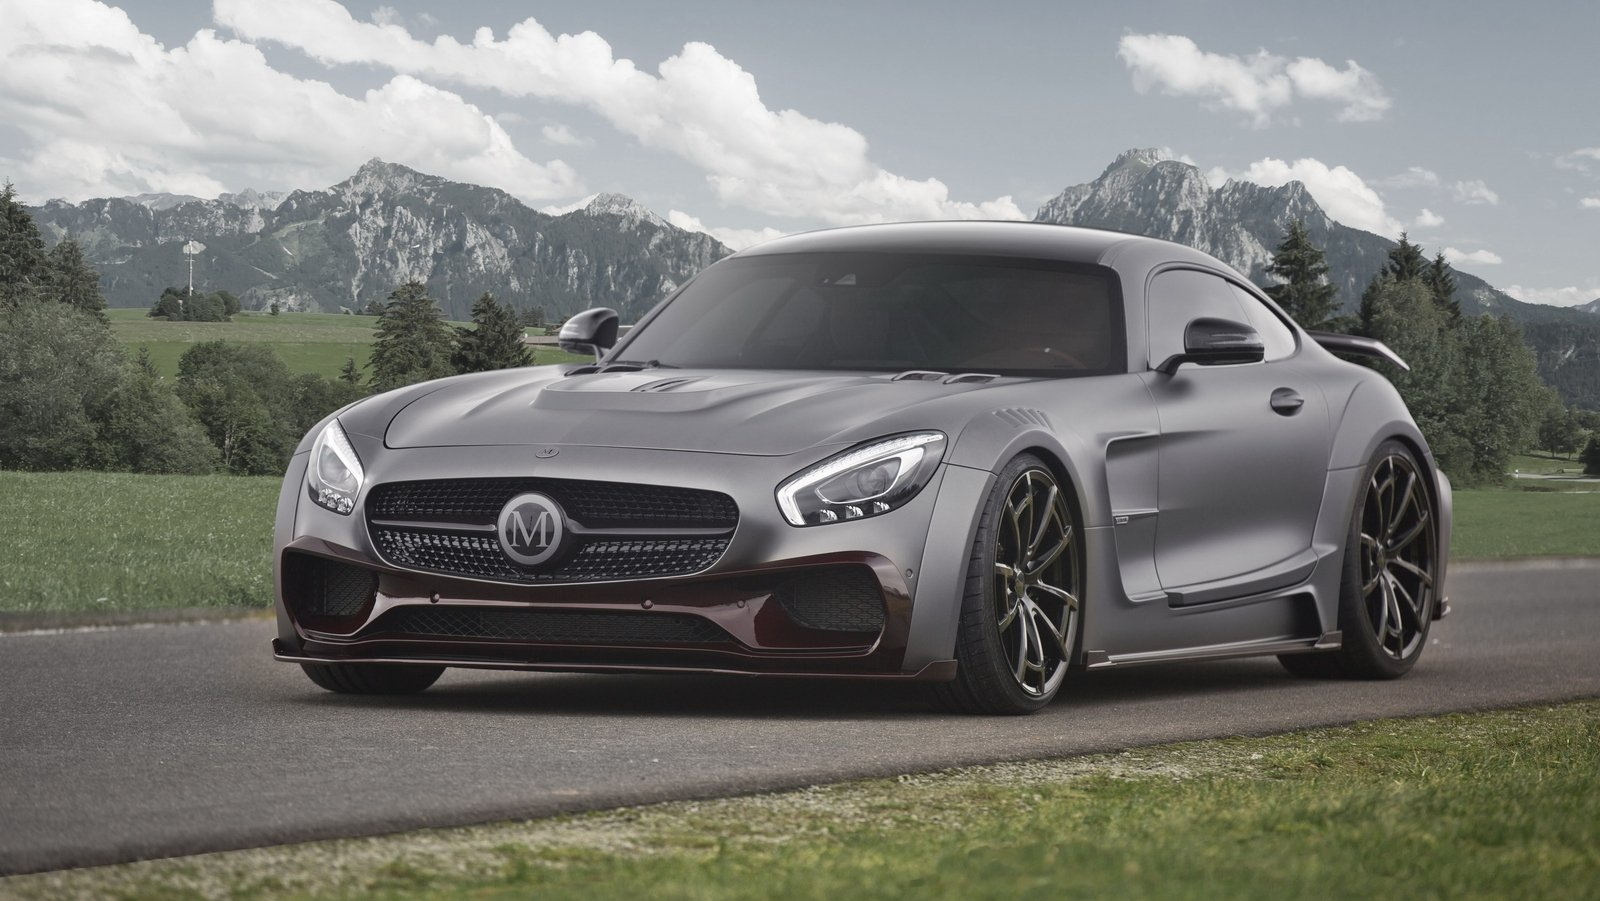 2016 mercedes amg gt s by mansory review top speed. Black Bedroom Furniture Sets. Home Design Ideas